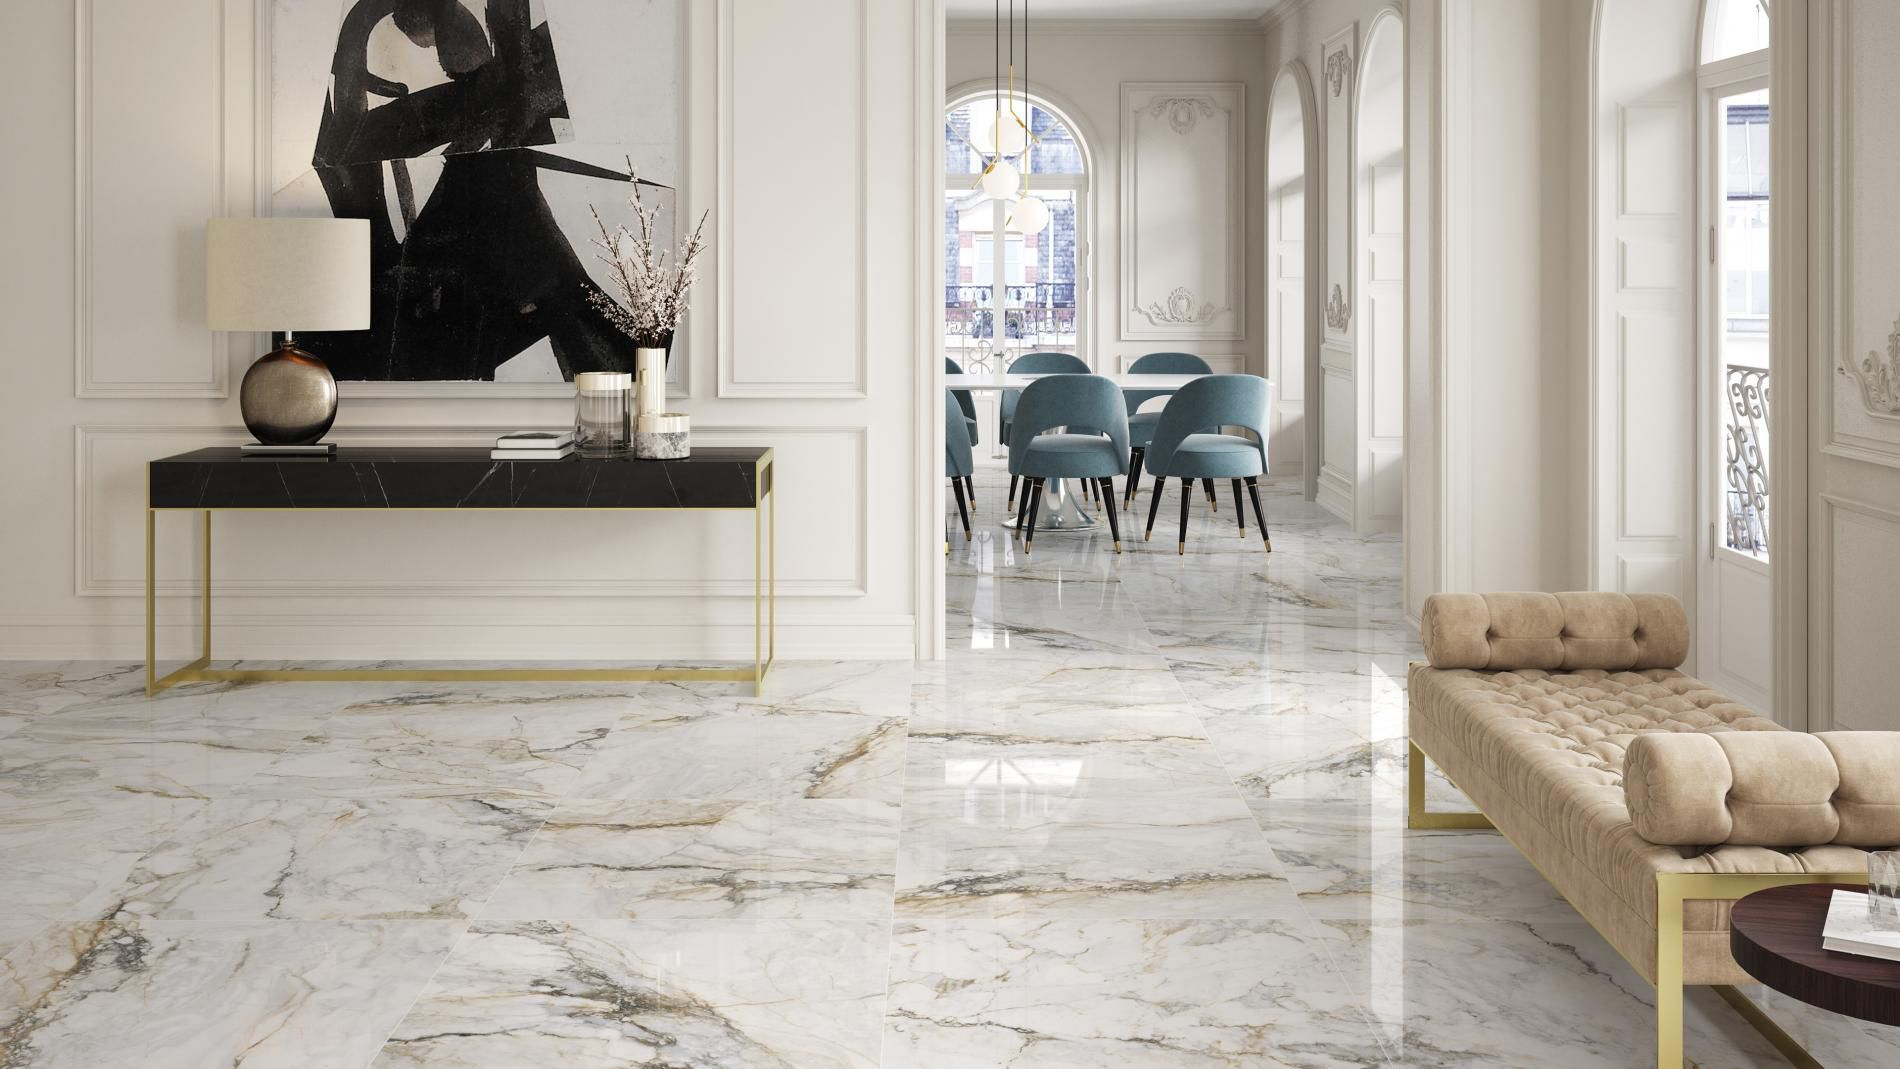 Pamesa Indoor Tile Wall Floor Porcelain Stoneware Cr Pisa